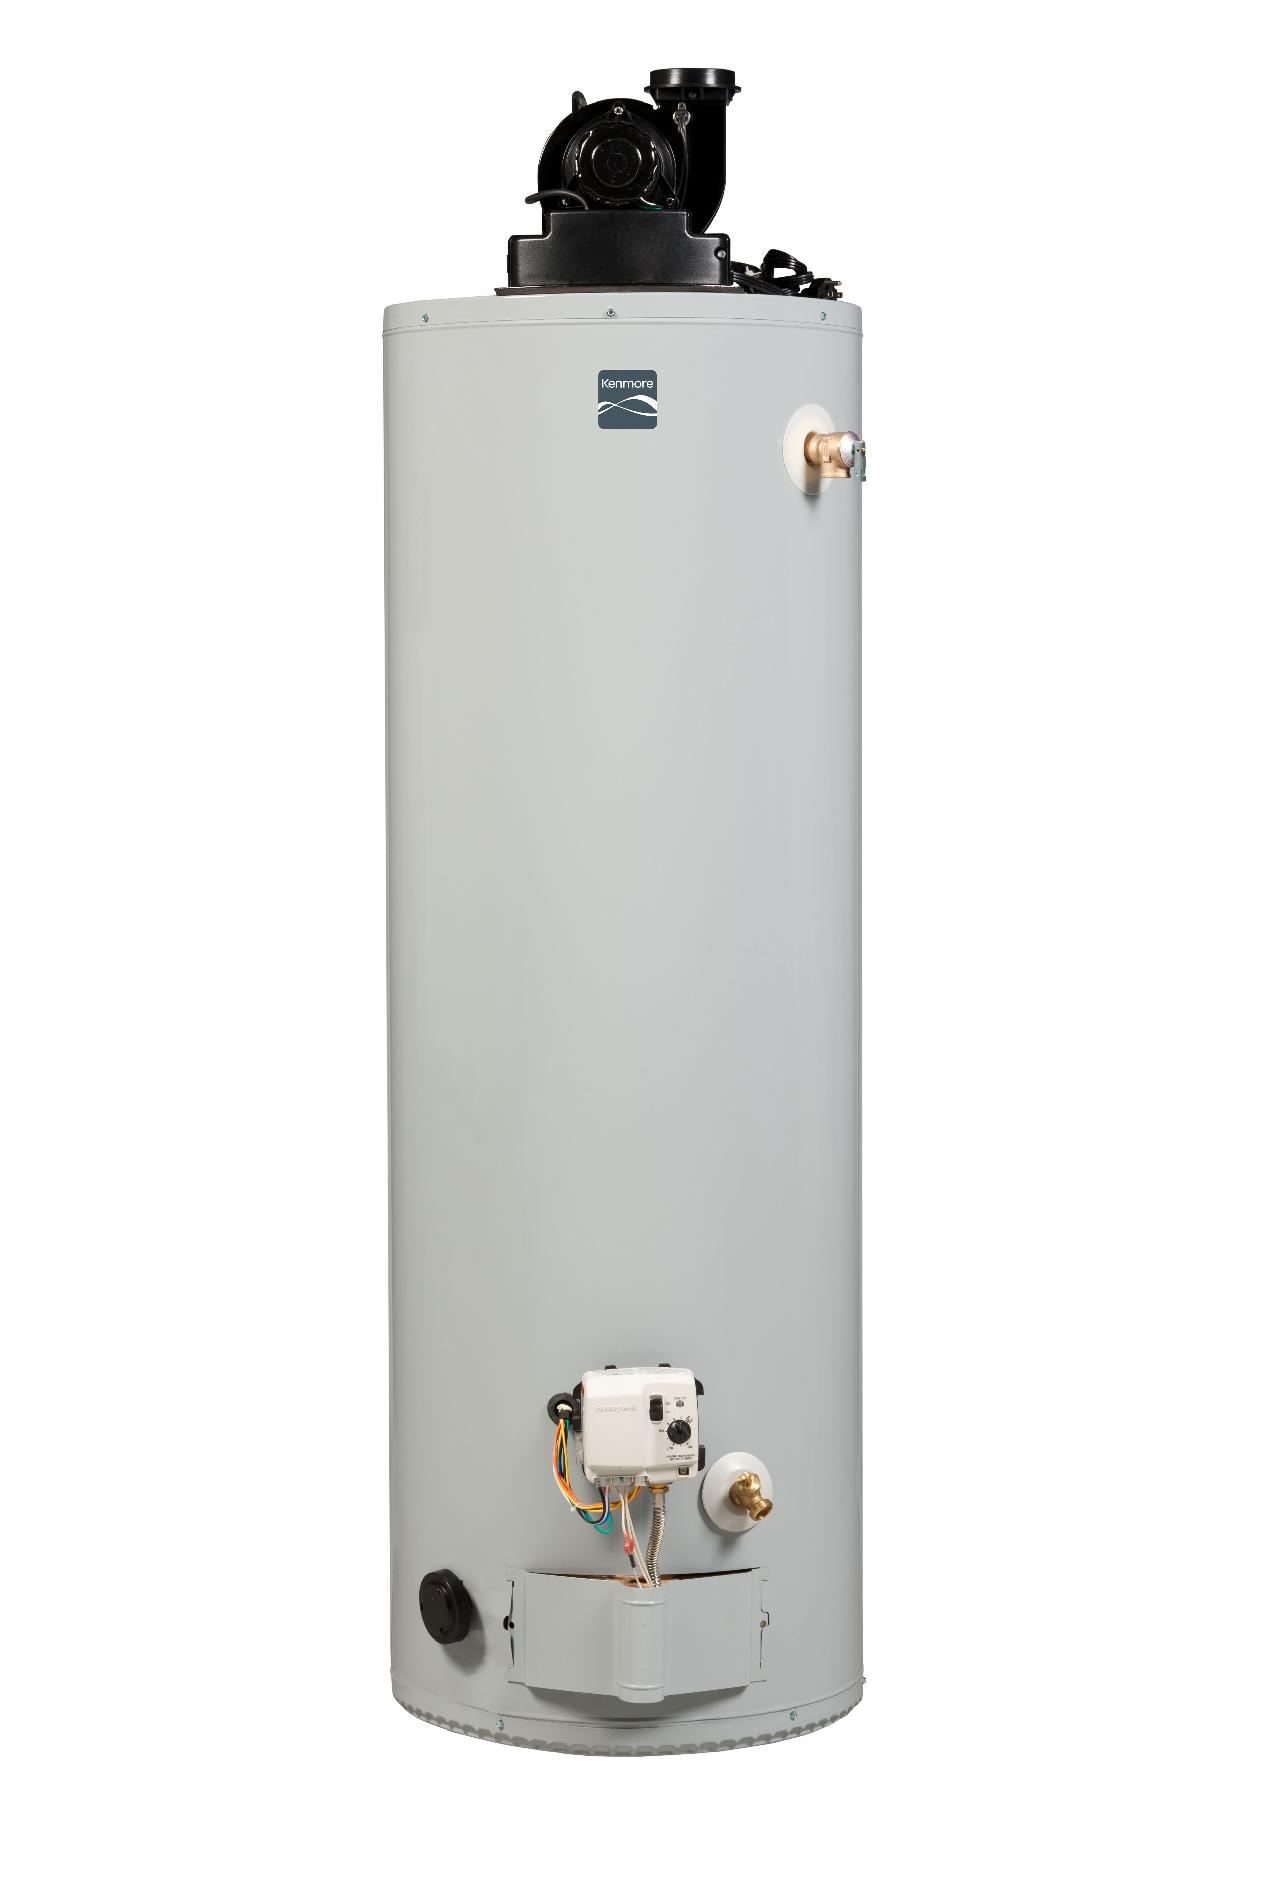 Kenmore 33136 50 gal 6Year Tall Natural Gas Water Heater